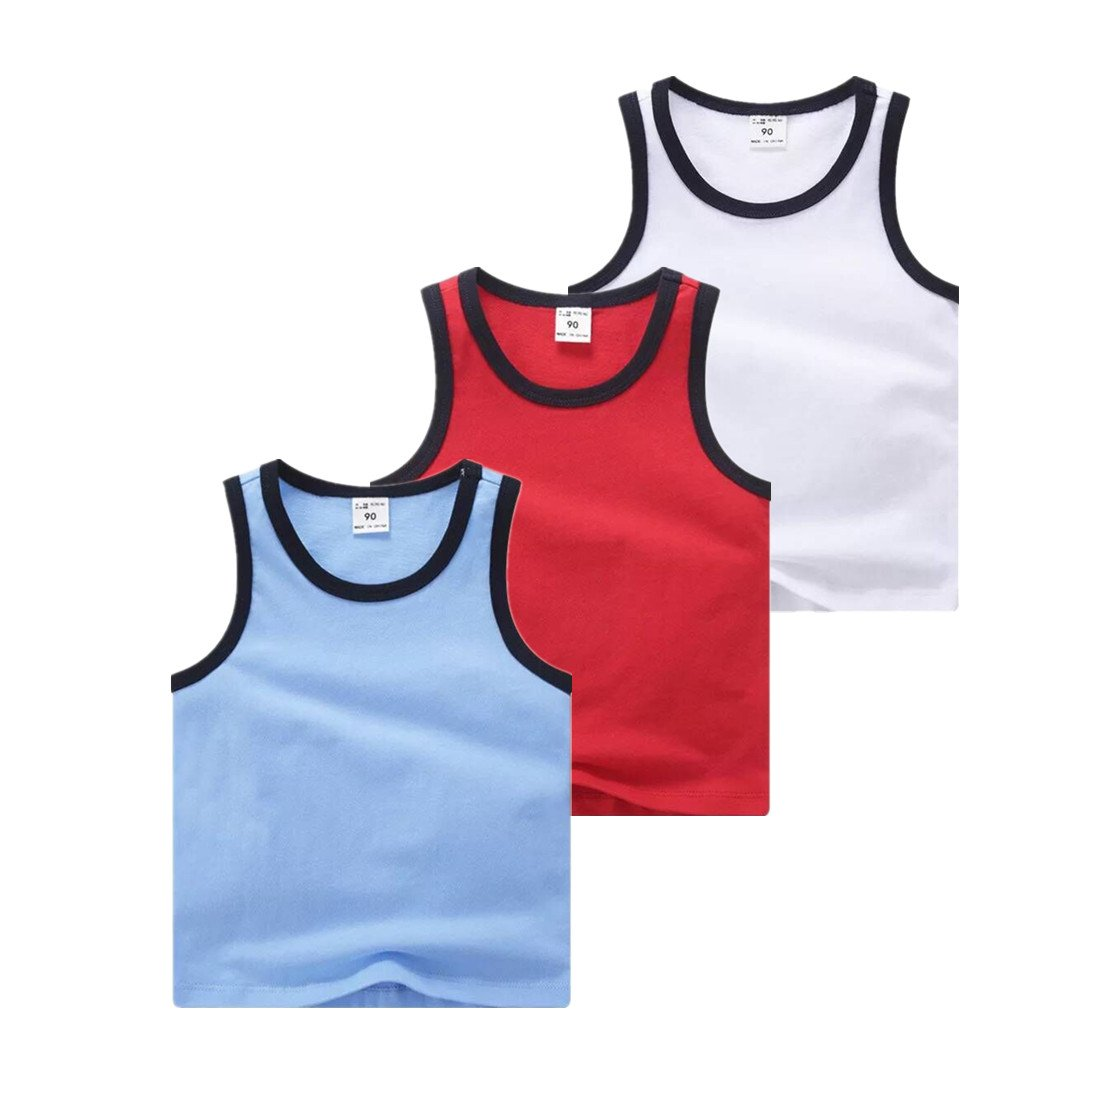 Sooxiwood Little Boys Tank Tops Solid Vest Summer Size 5 Style-1